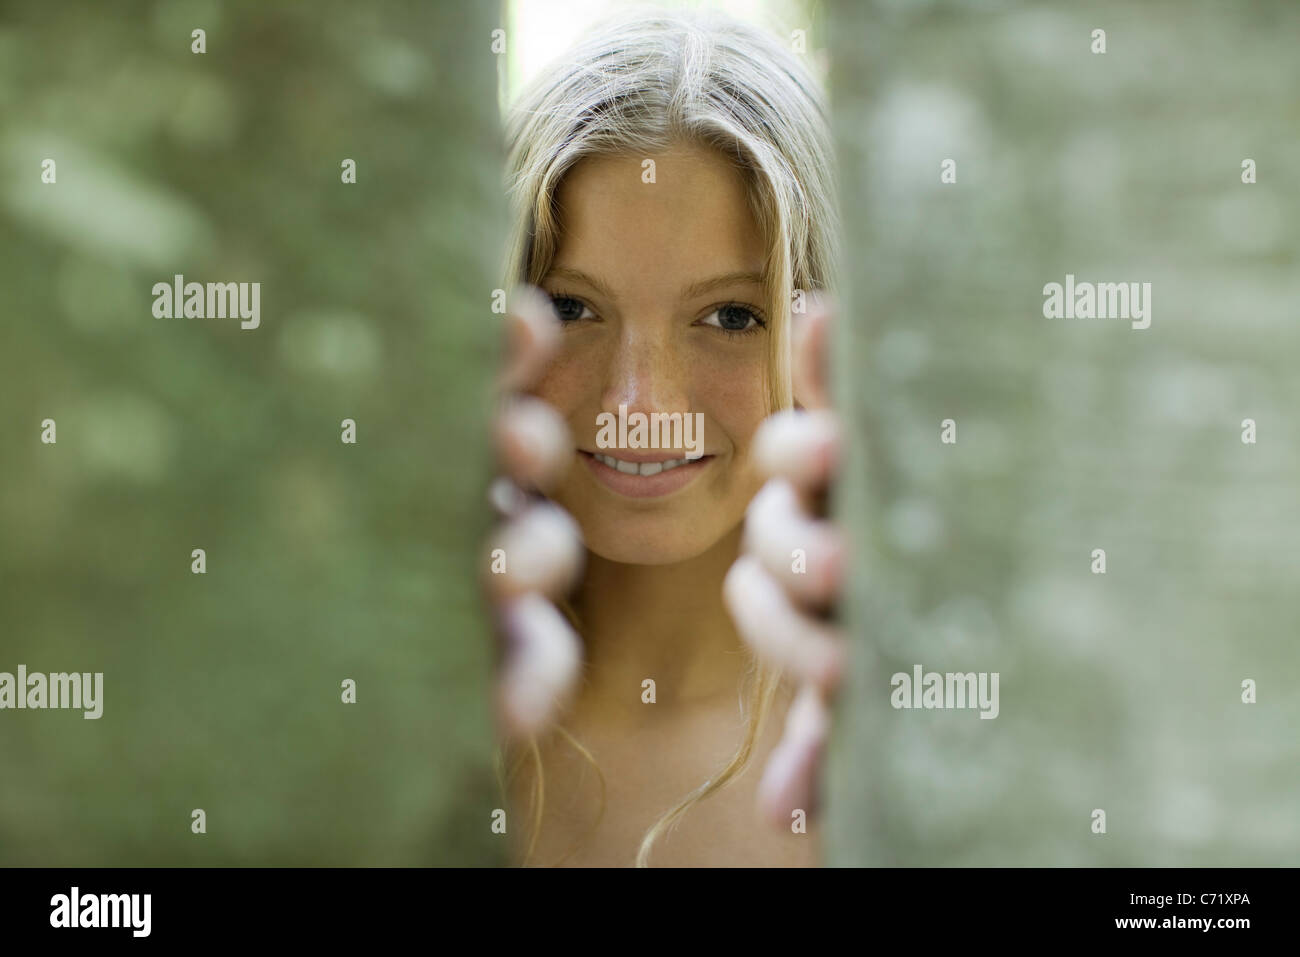 Young woman peering out from behind tree trunks - Stock Image